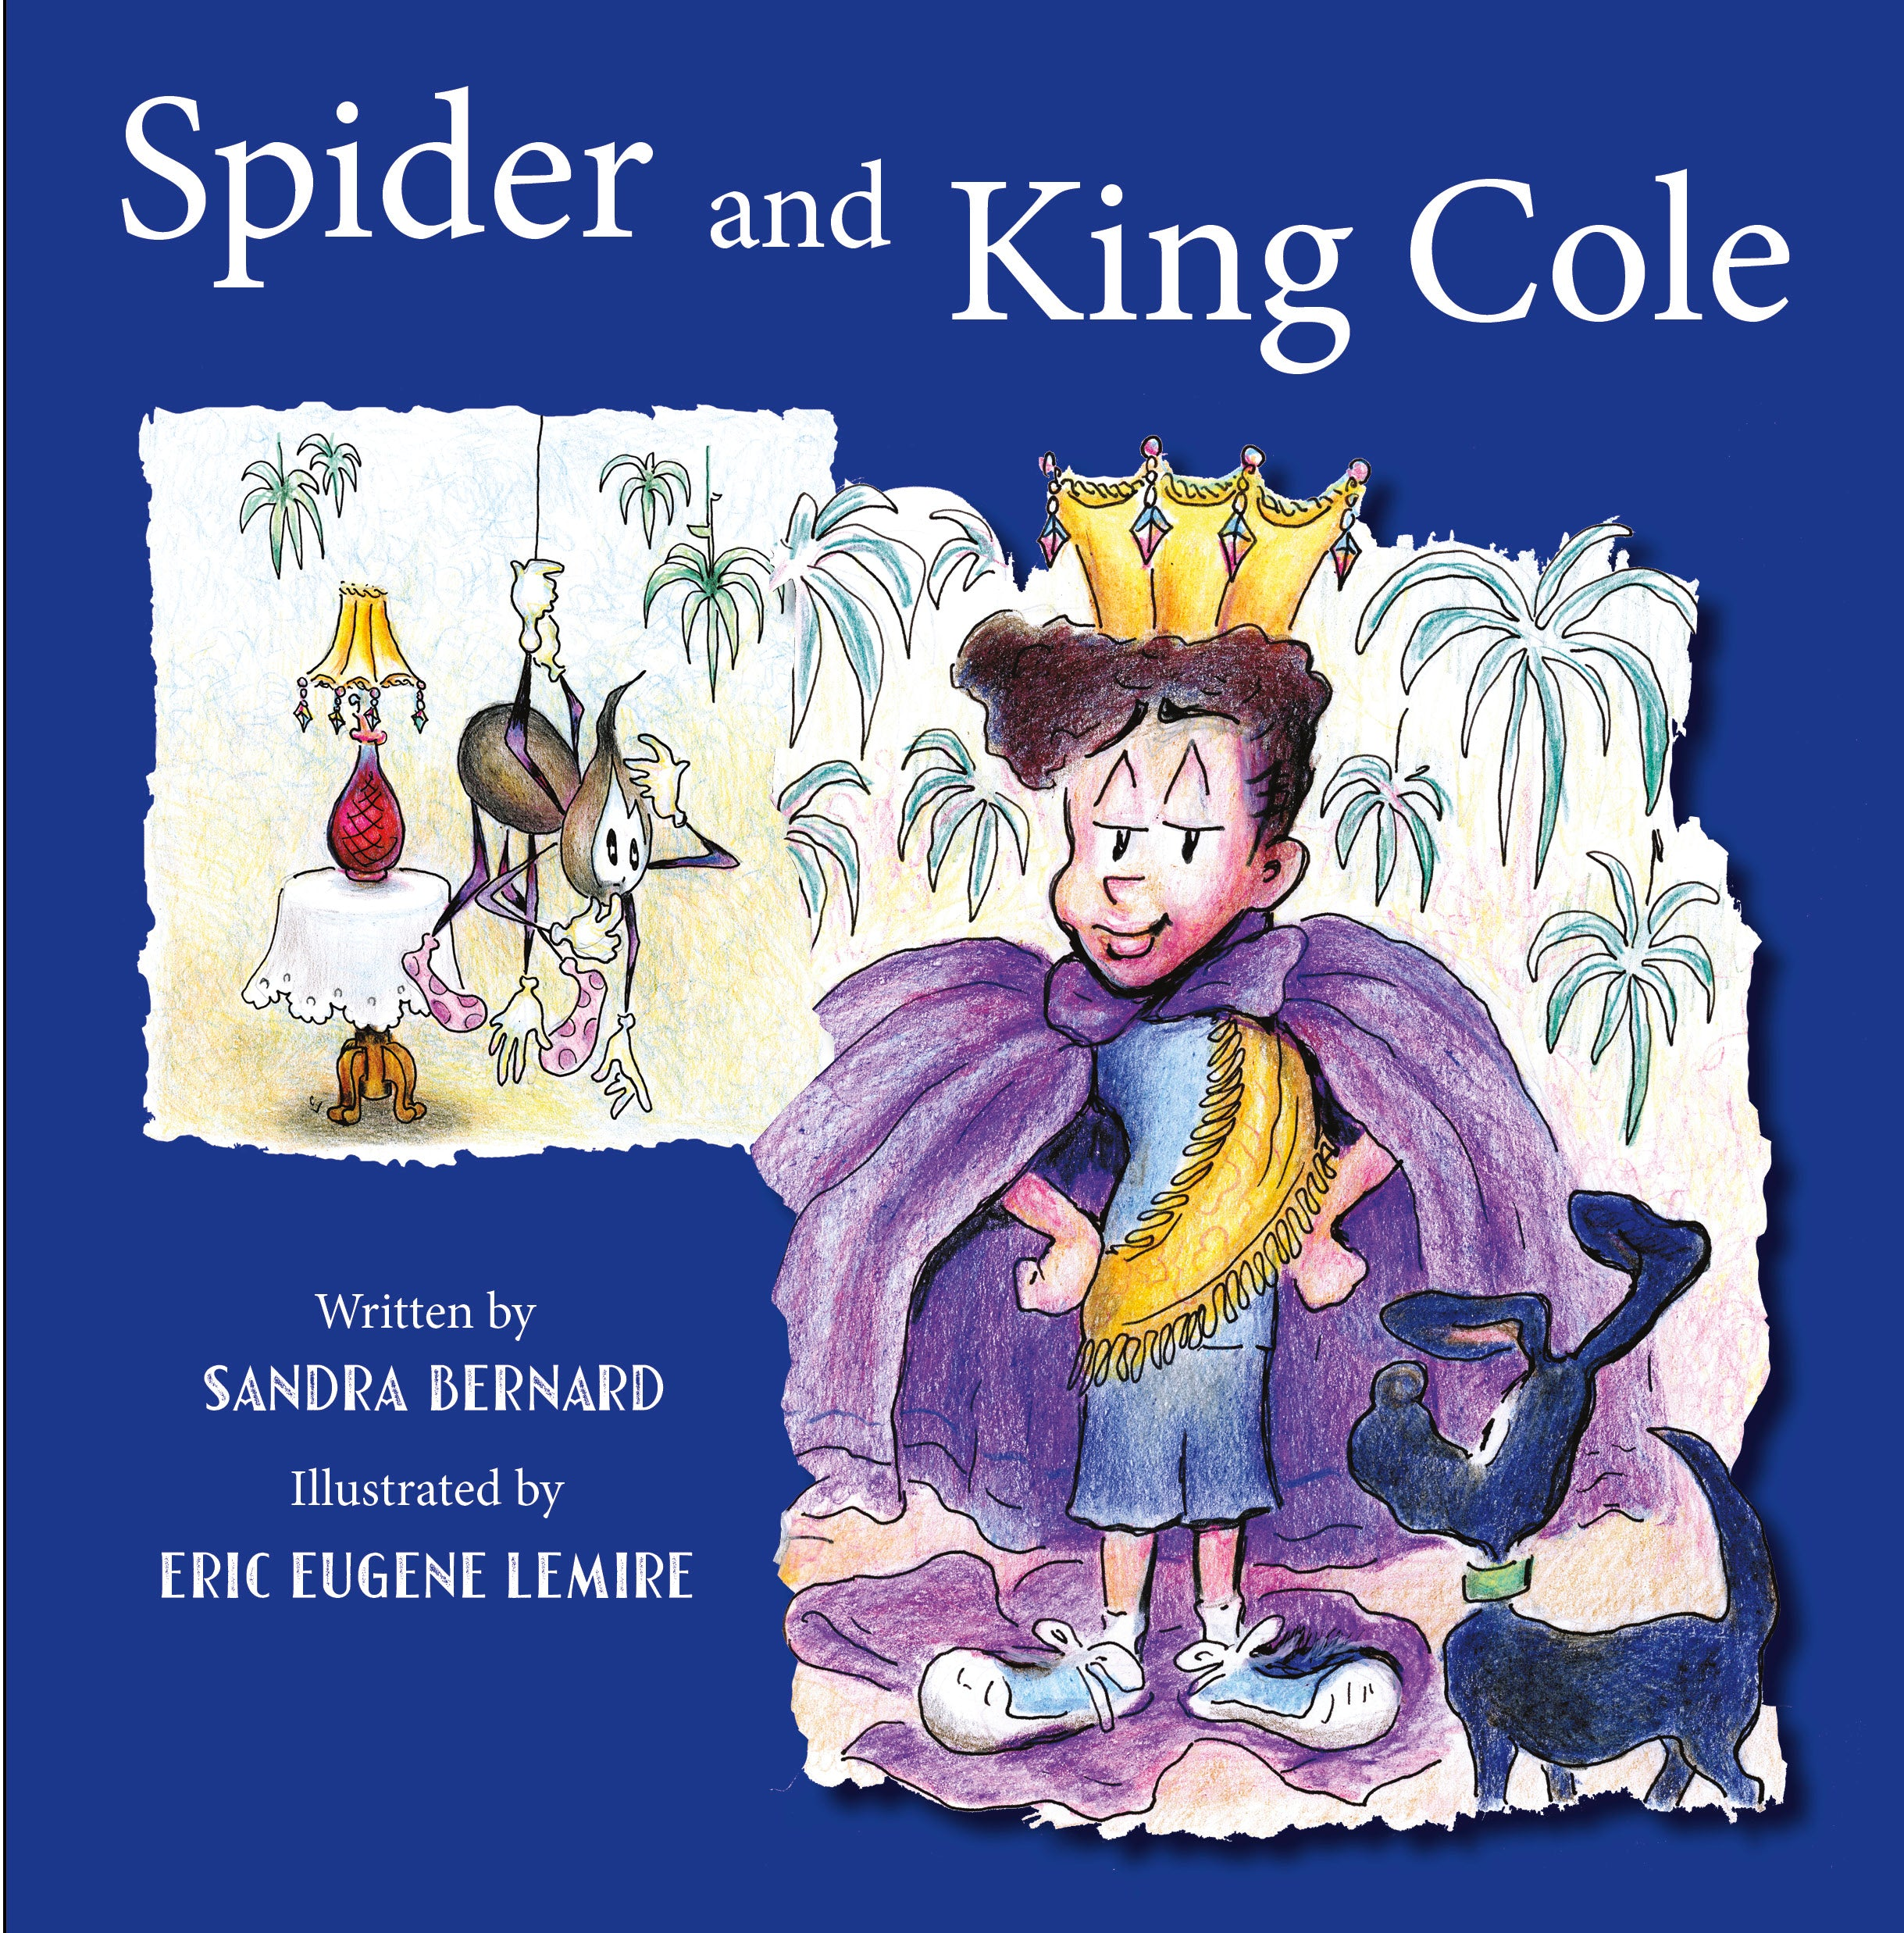 Spider and King Cole